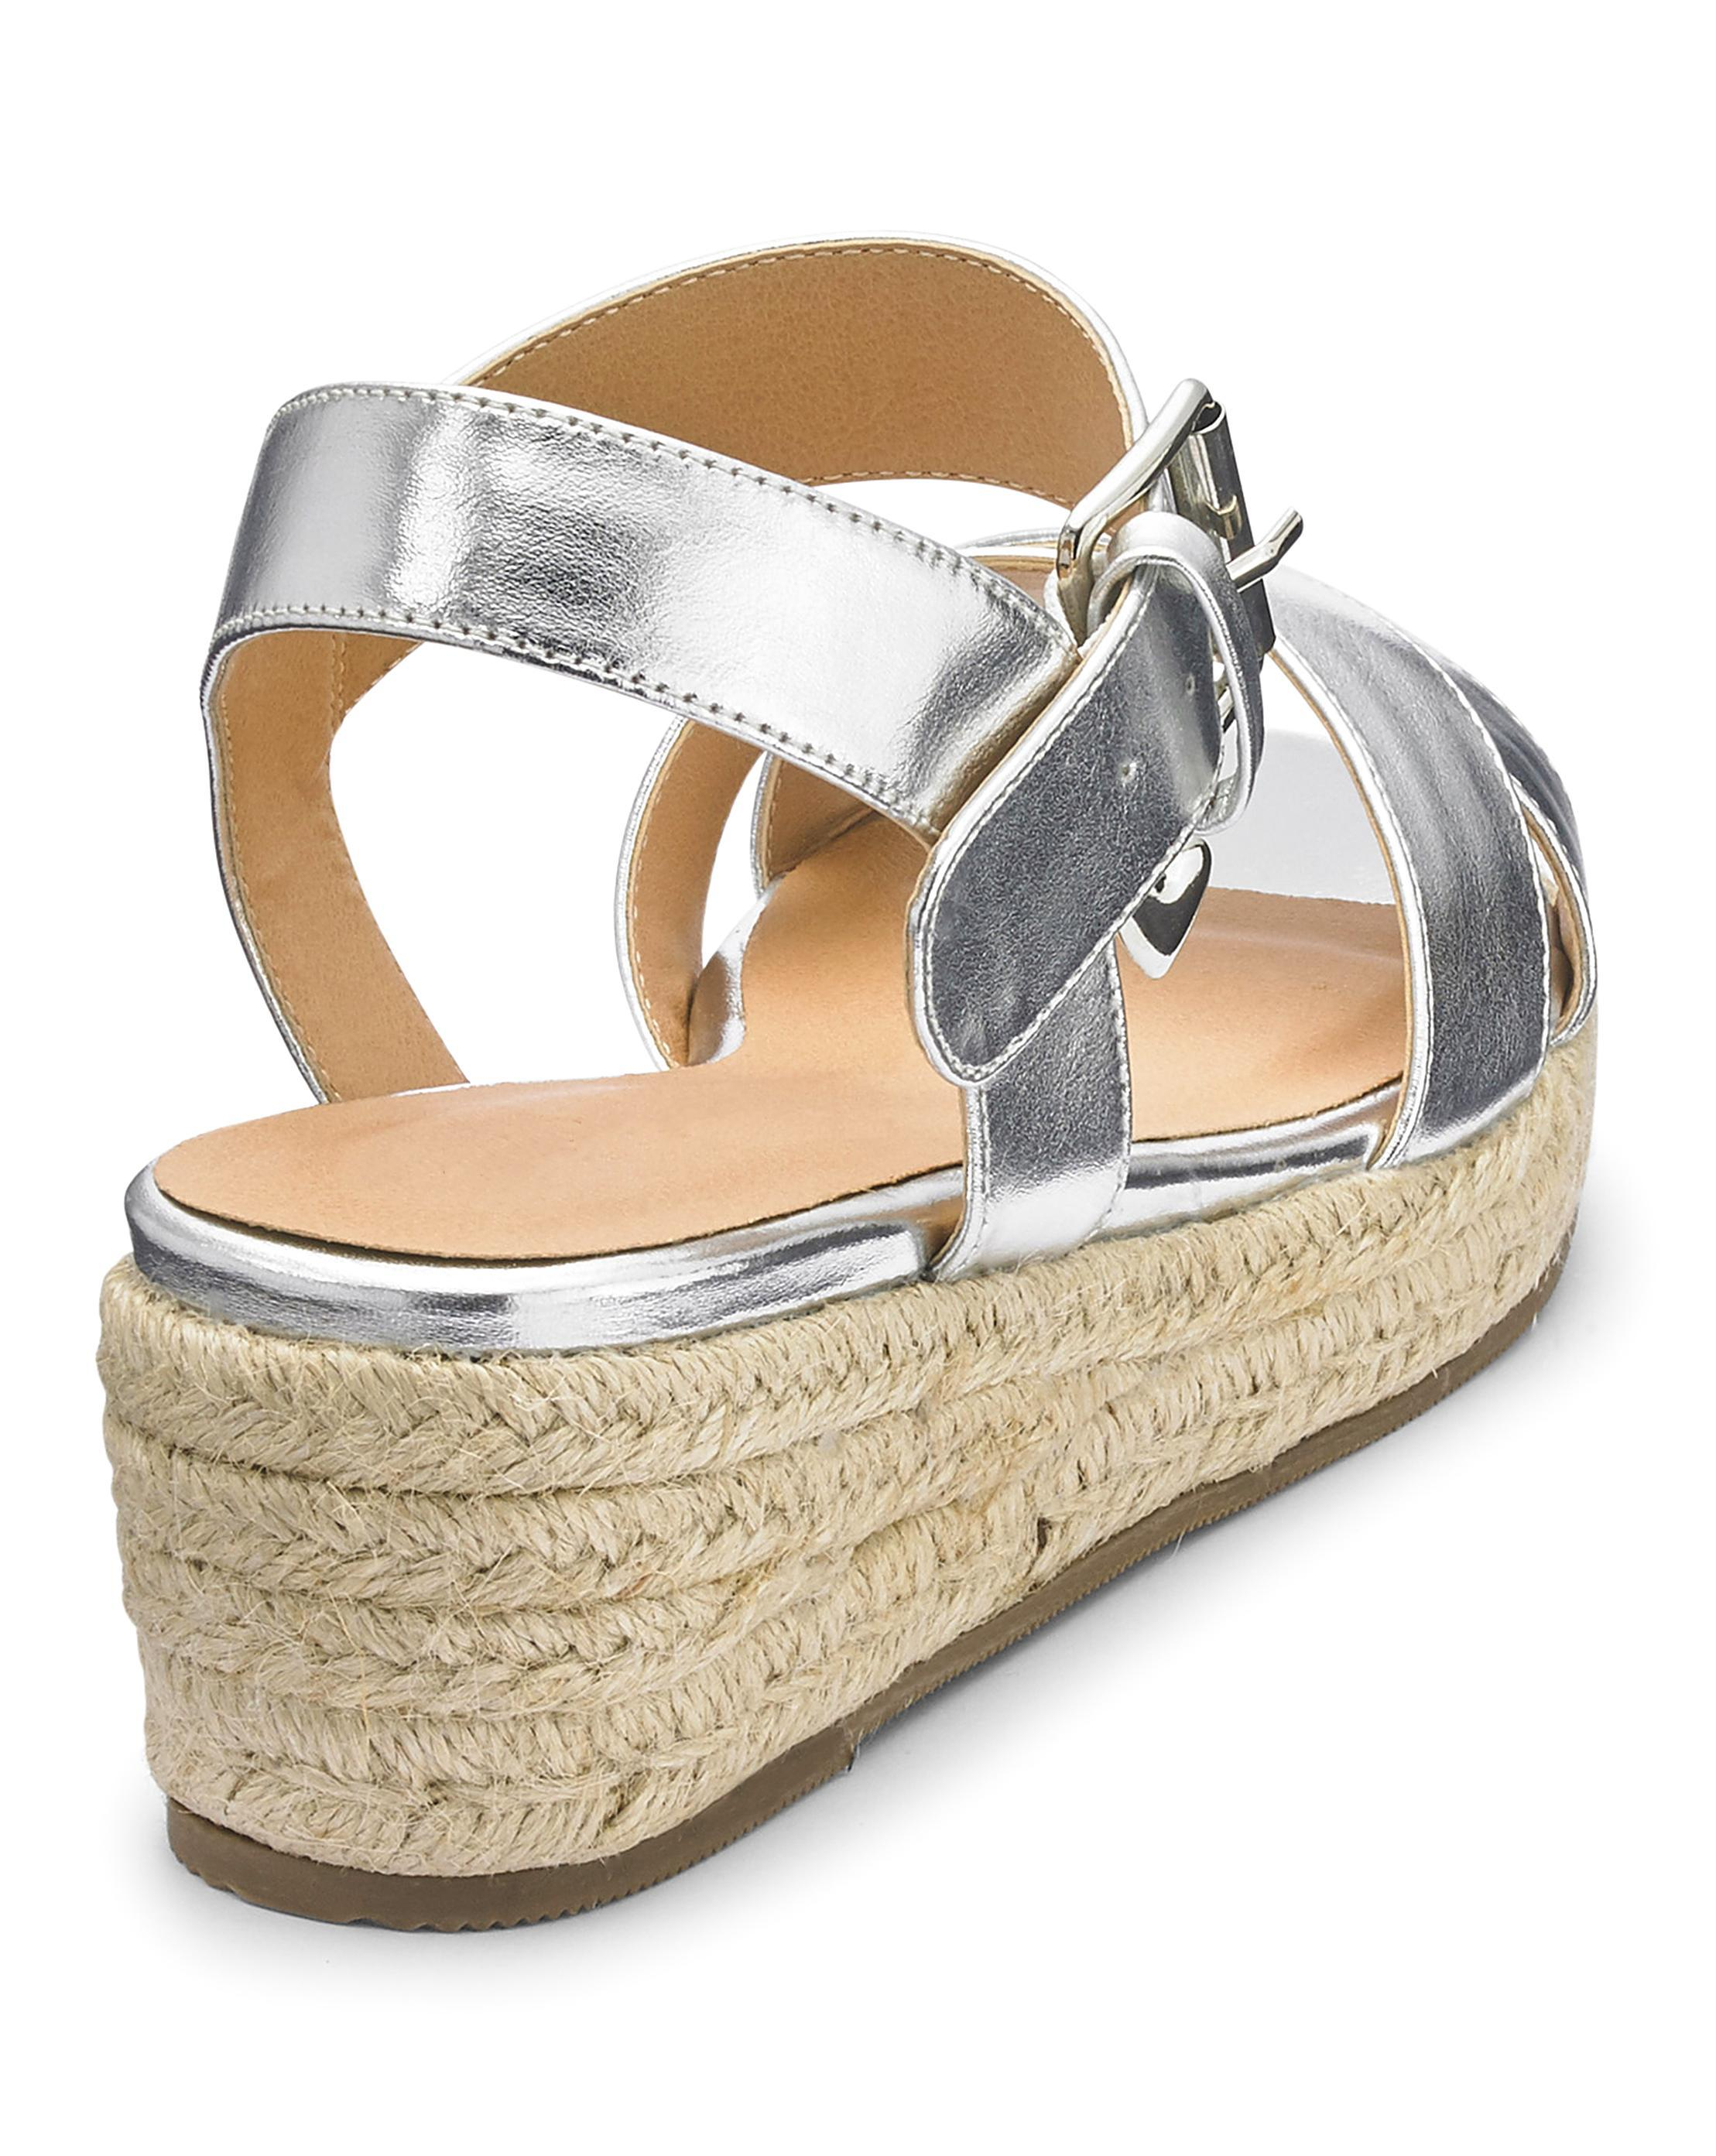 4828c349f2d7 Lyst - Simply Be Indra Espadrille Wedge Wide Fit in Metallic